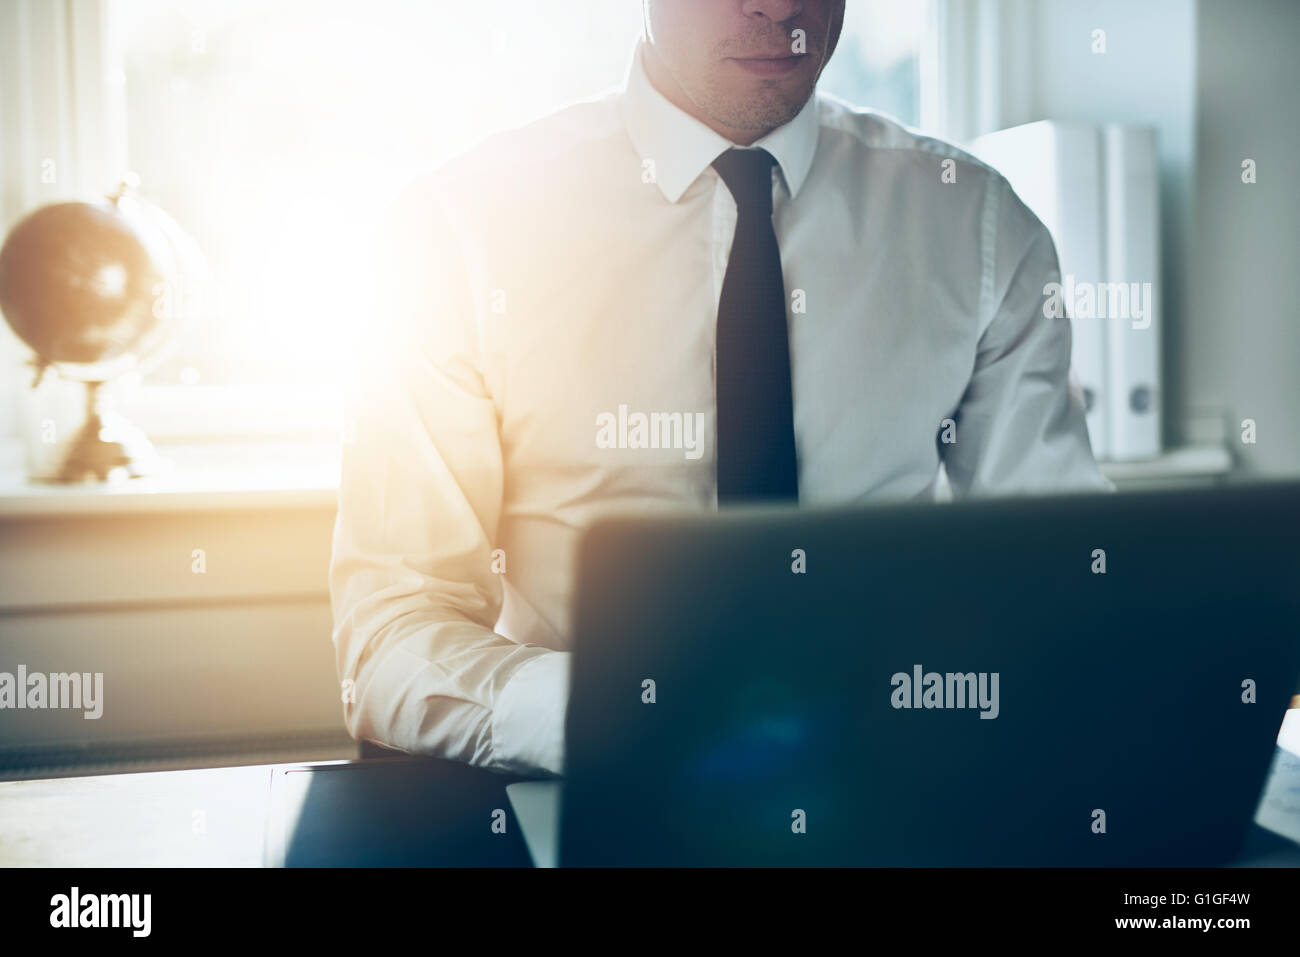 Close up of business man working at laptop, white shirt and tie business concept - Stock Image